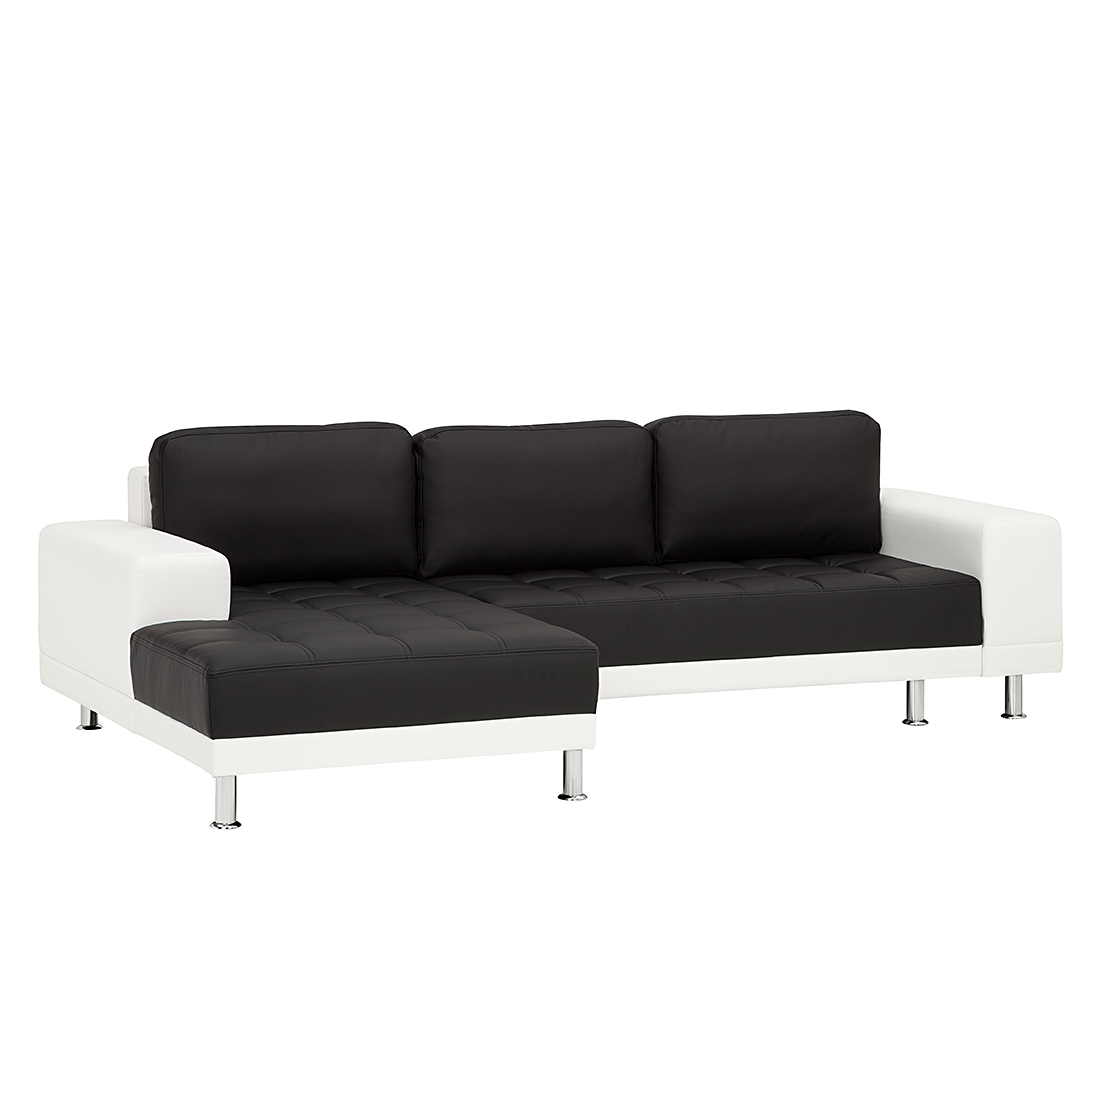 ecksofa schwarz wei schlafsofa schlafcouch sofa couch. Black Bedroom Furniture Sets. Home Design Ideas